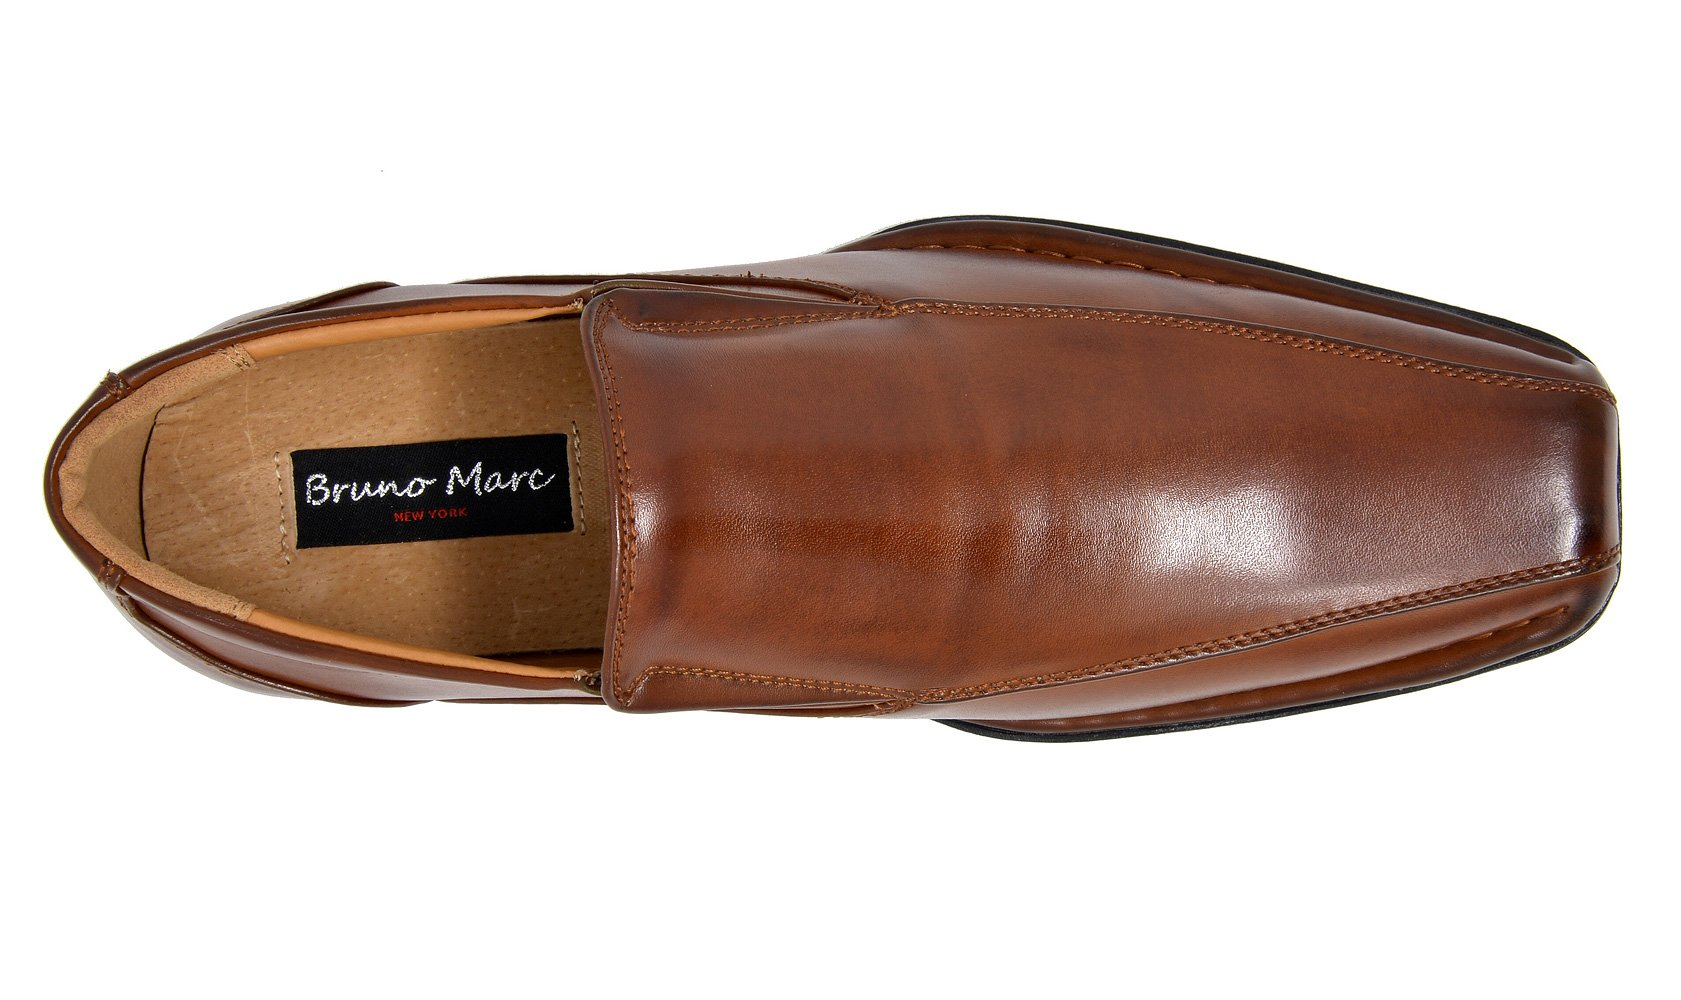 Bruno Marc Men's Giorgio-1 Brown Leather Lined Dress Loafers Shoes - 11 M US by BRUNO MARC NEW YORK (Image #4)